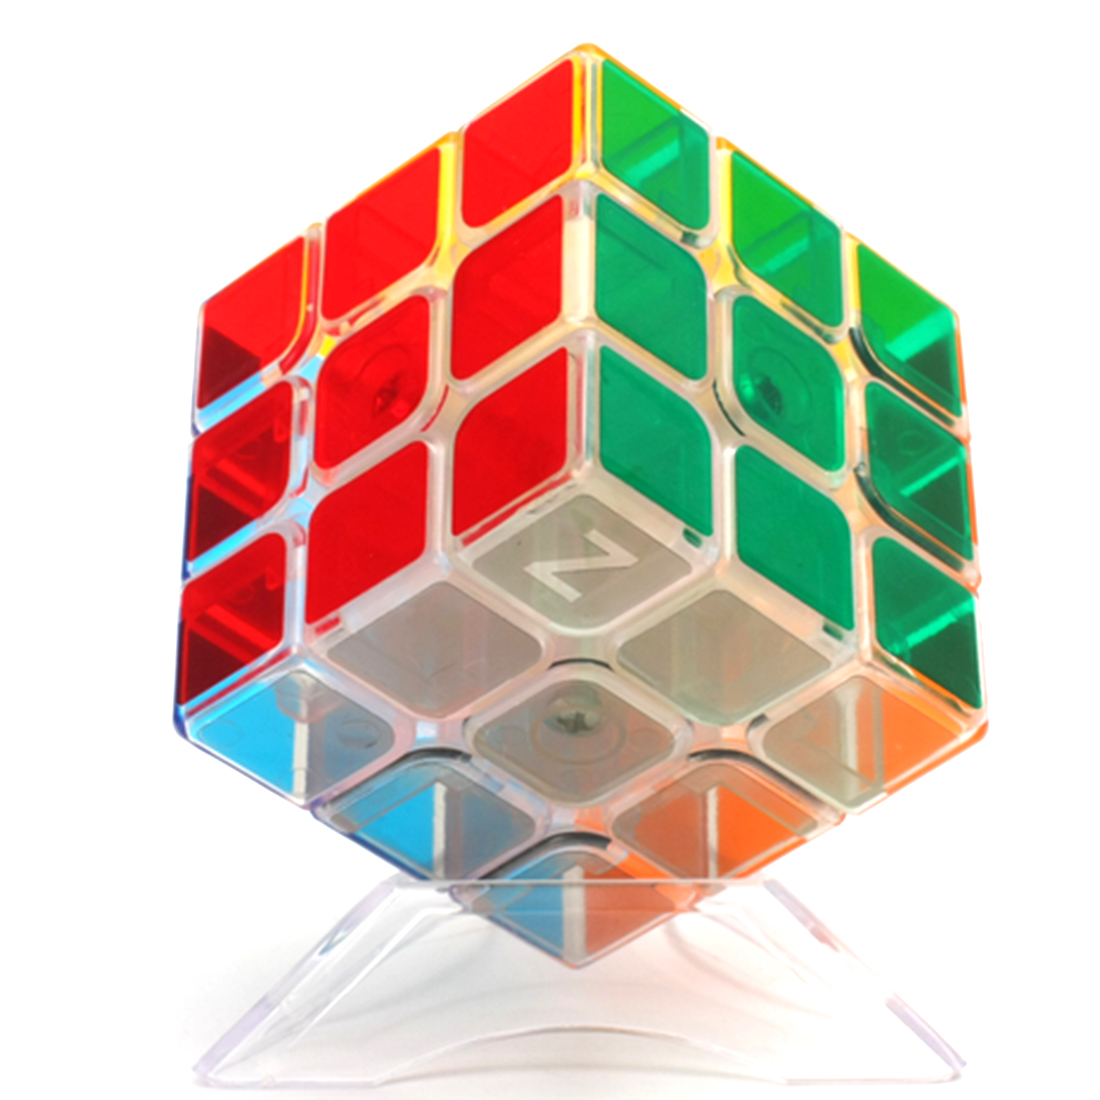 ZCUBE Transparent 3x3x3 Magic Cube Brain Teaser Speed Cube Puzzle Toy invisibobble original princess of the hearts резинка браслет для волос original princess of the hearts резинка браслет для волос